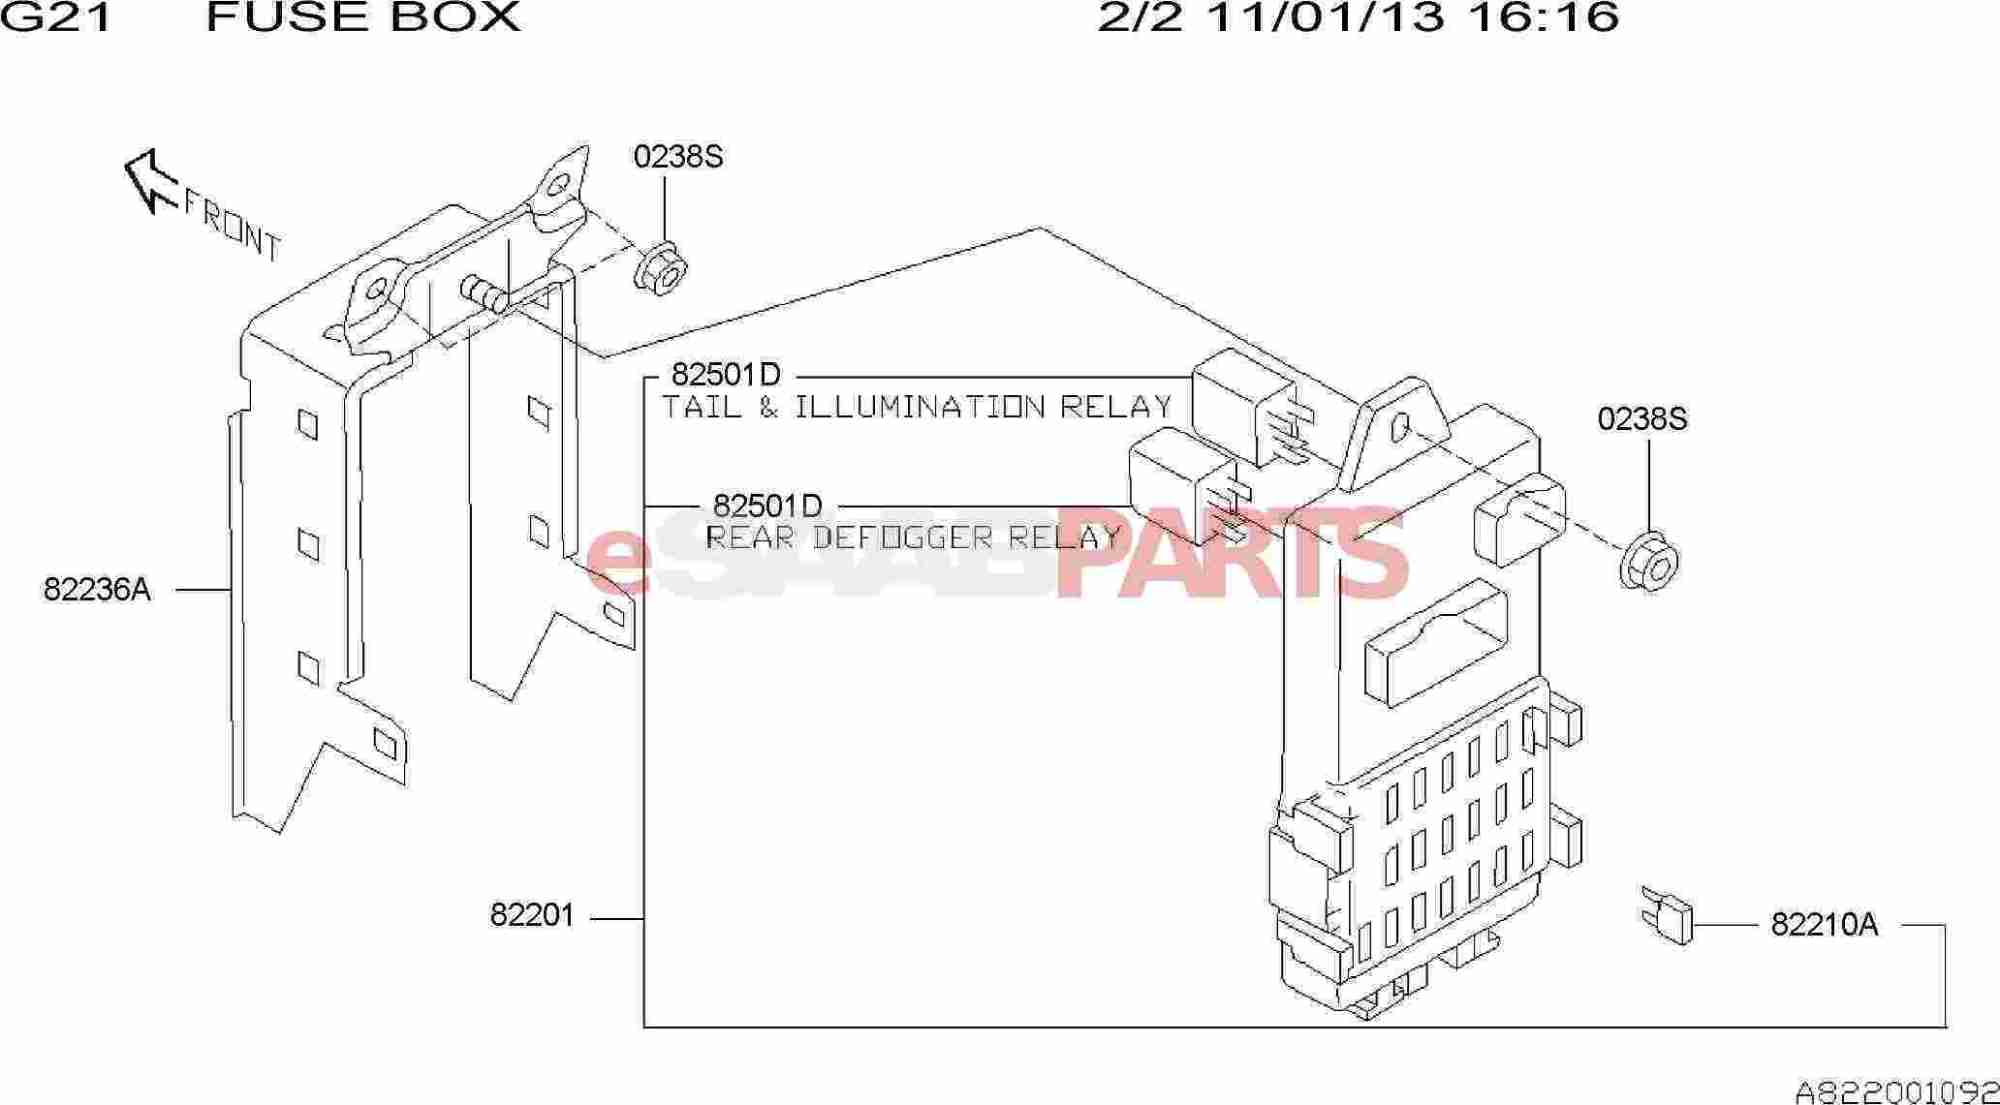 hight resolution of house fuse box parts wiring diagram databasehouse fuse box parts wiring diagram database old house fuse